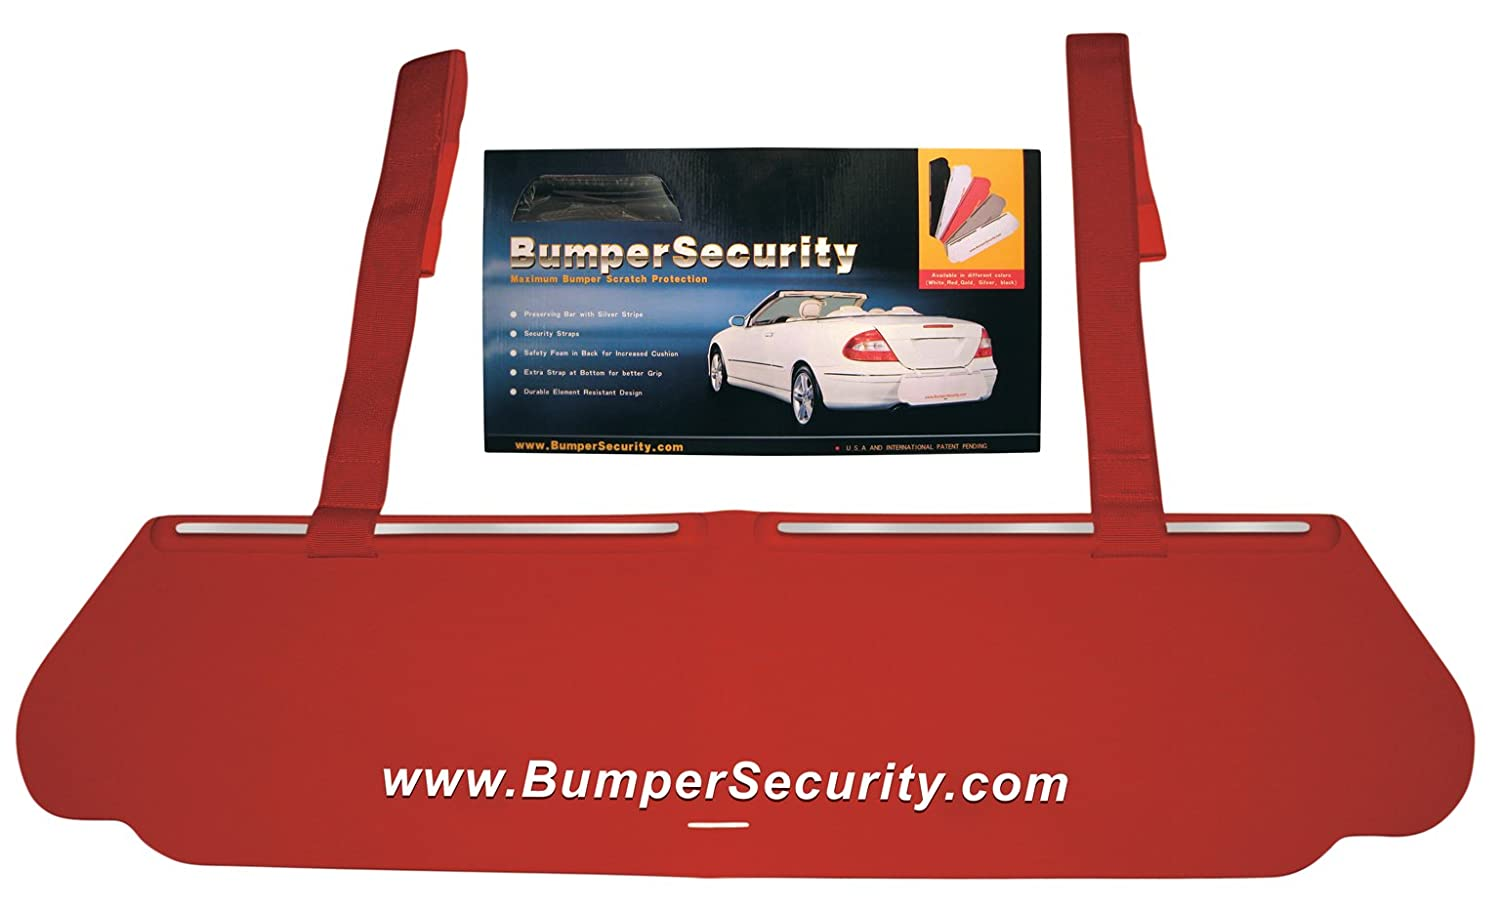 Bumper Security, Rear Bumper Scratch Protection Guard, RED